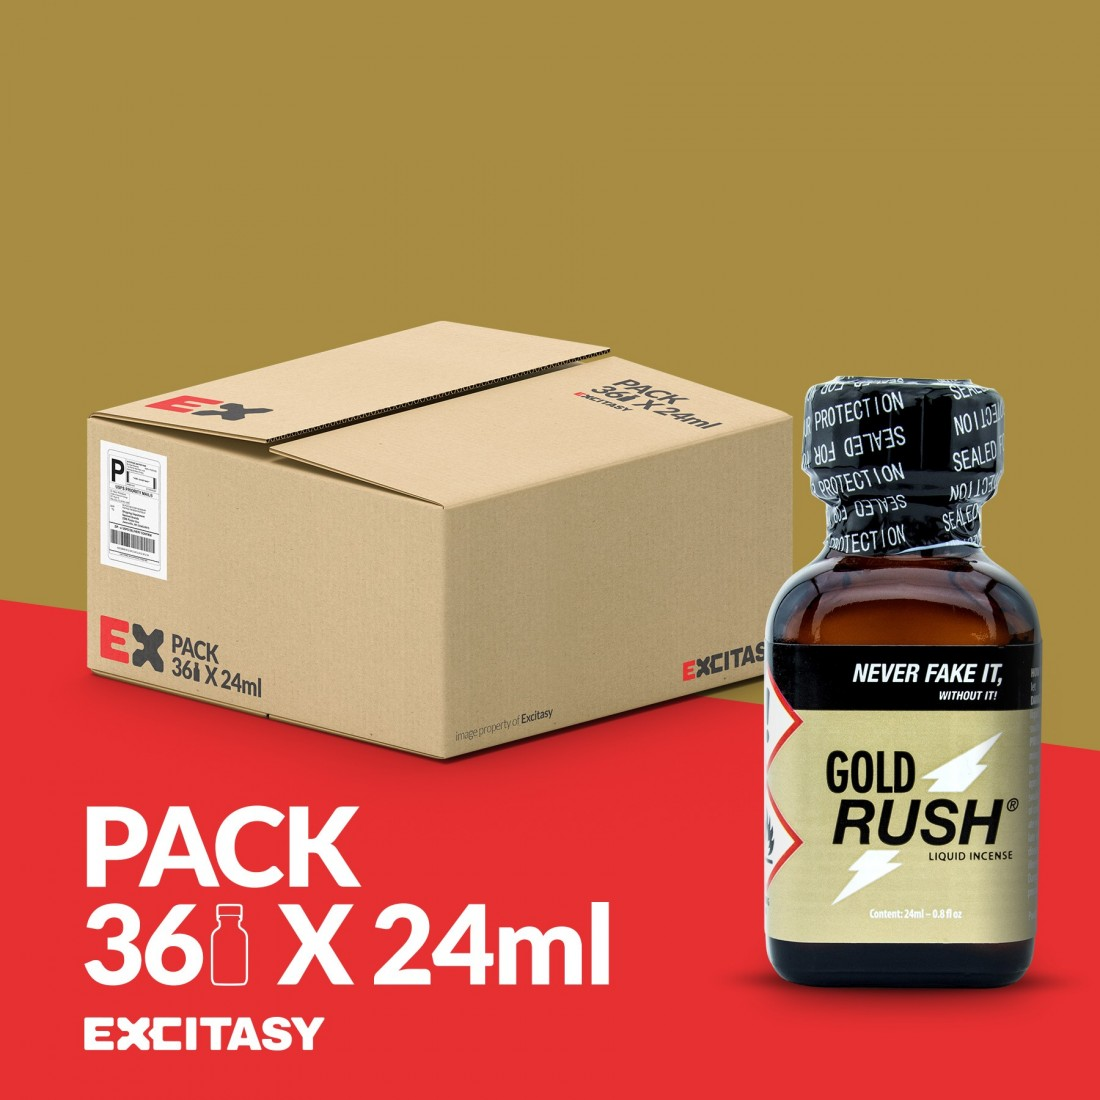 PACK WITH 36 GOLD RUSH 24ML